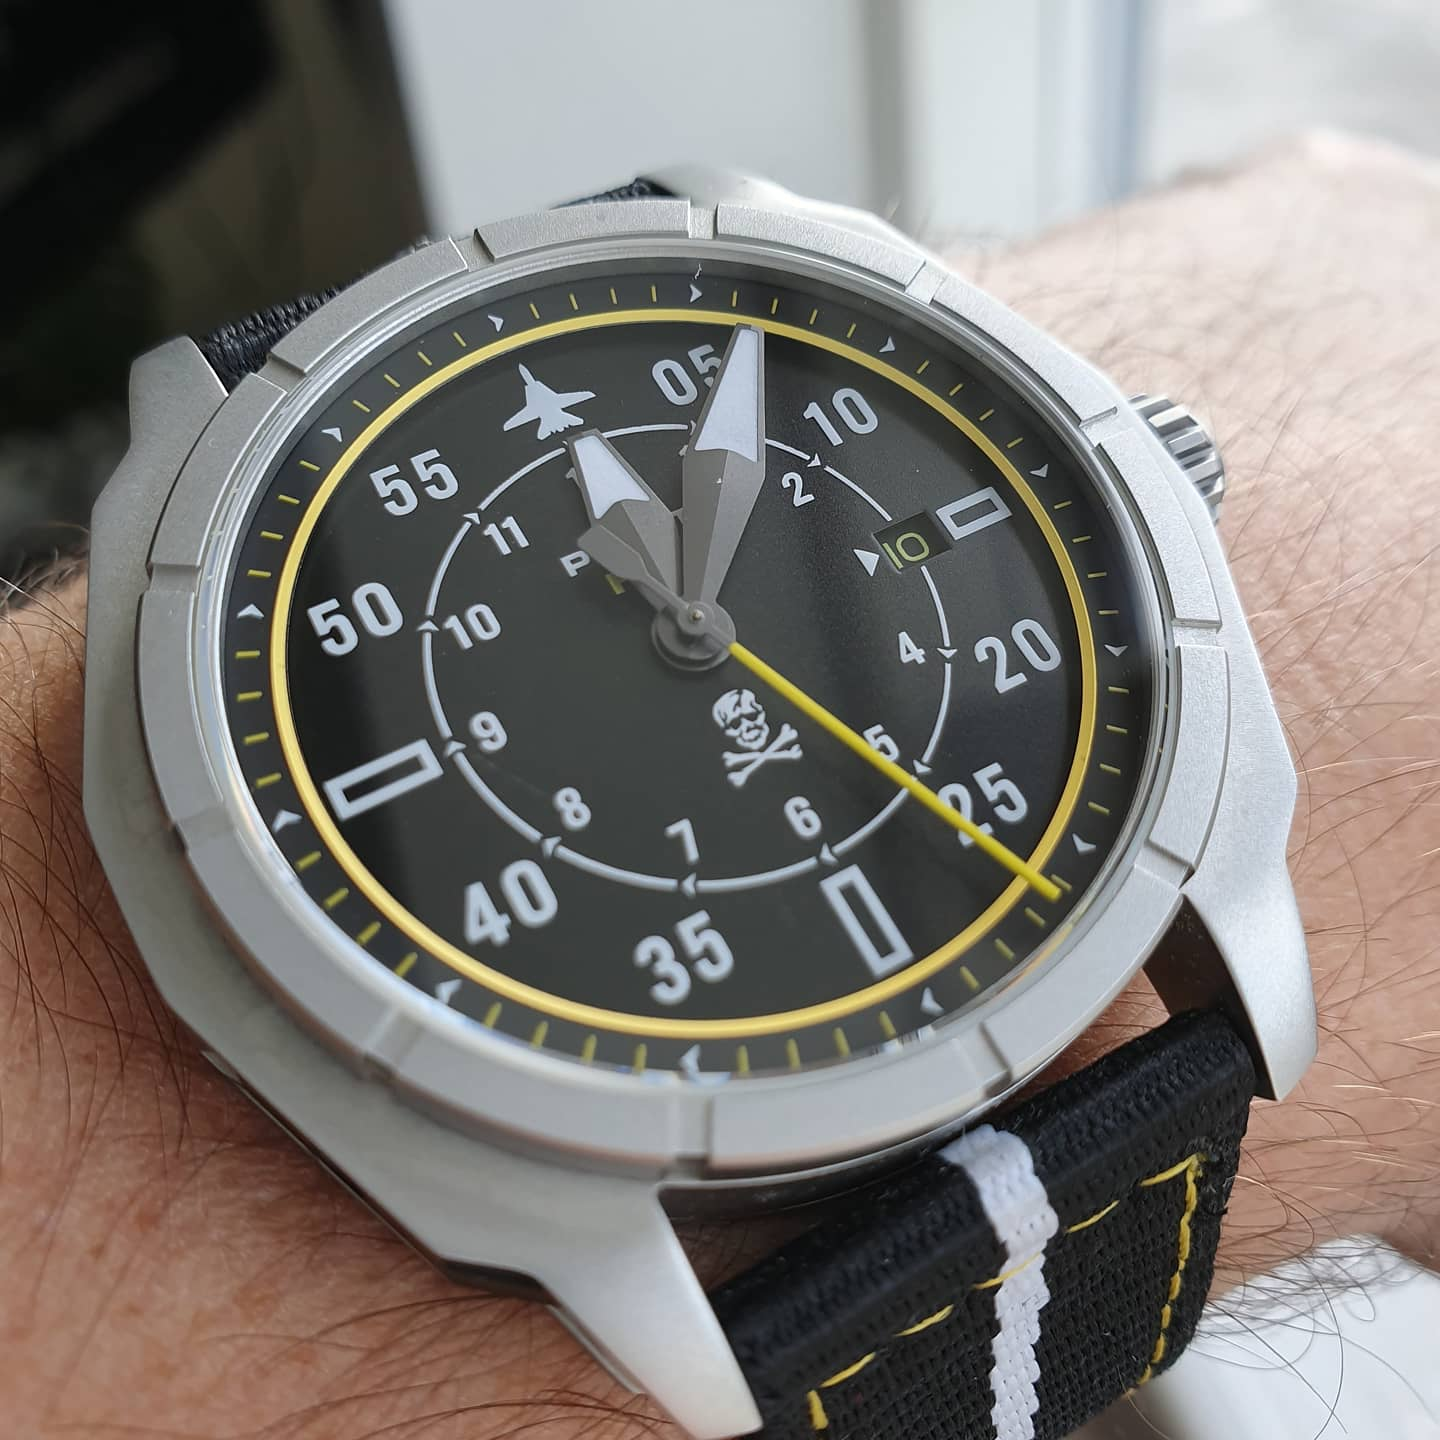 F-14 Tomcat inspired watches soon in stock.